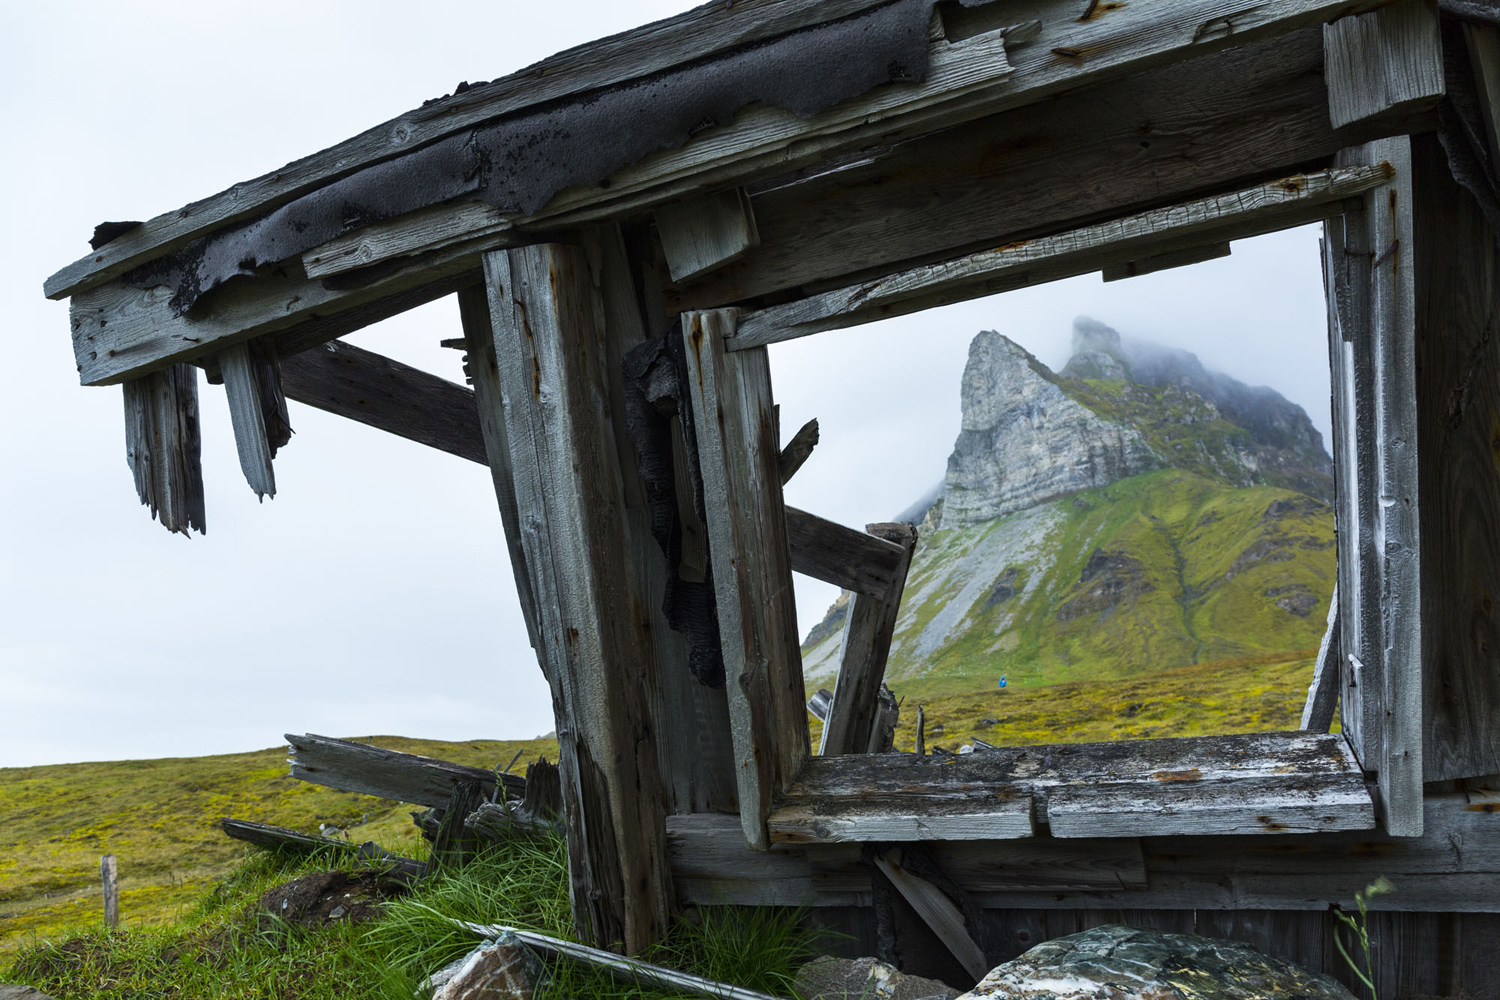 Remains of wooden shack - Spitsbergen Svalbard ,